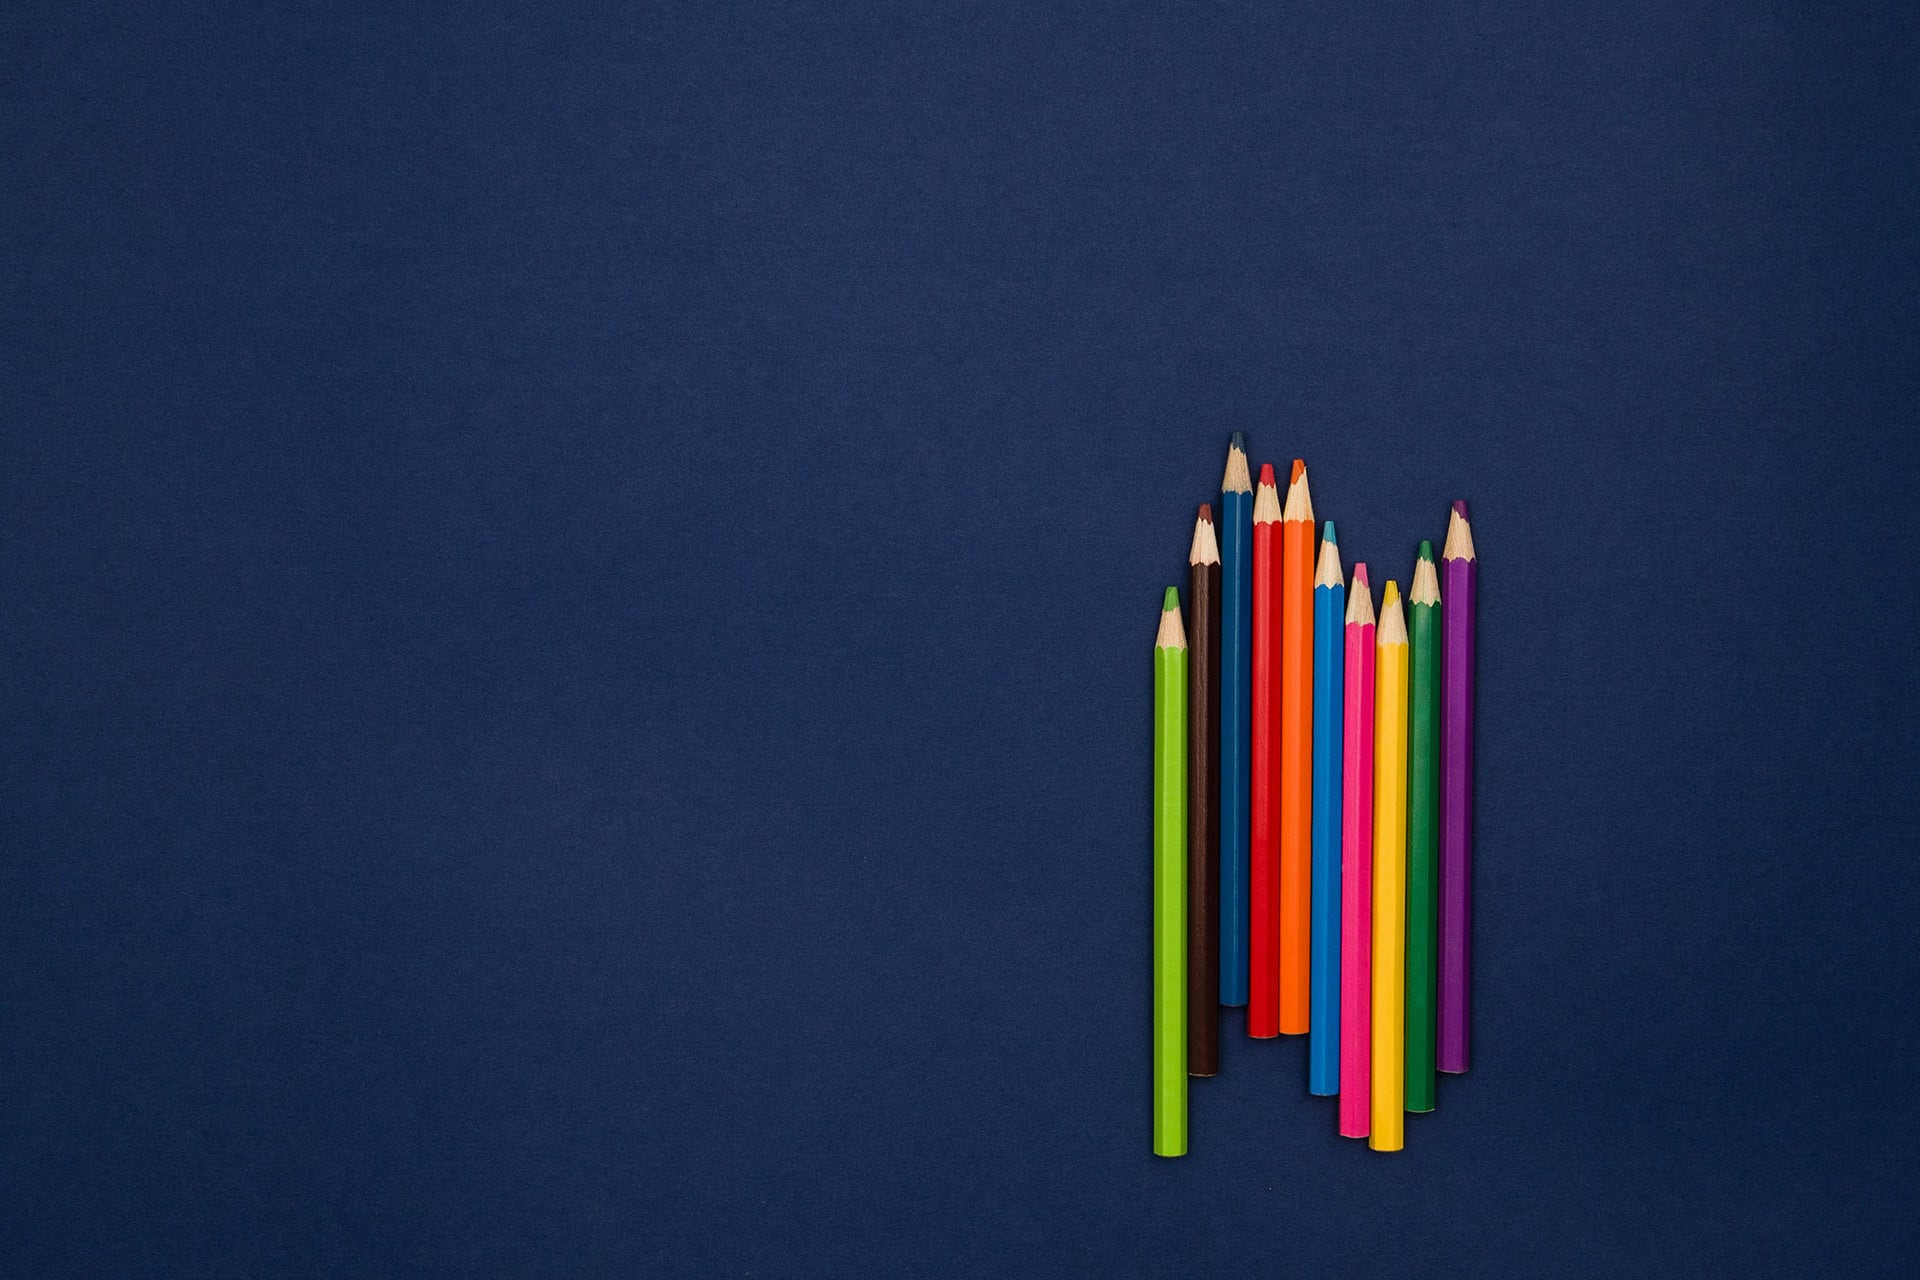 a group of colored pencils